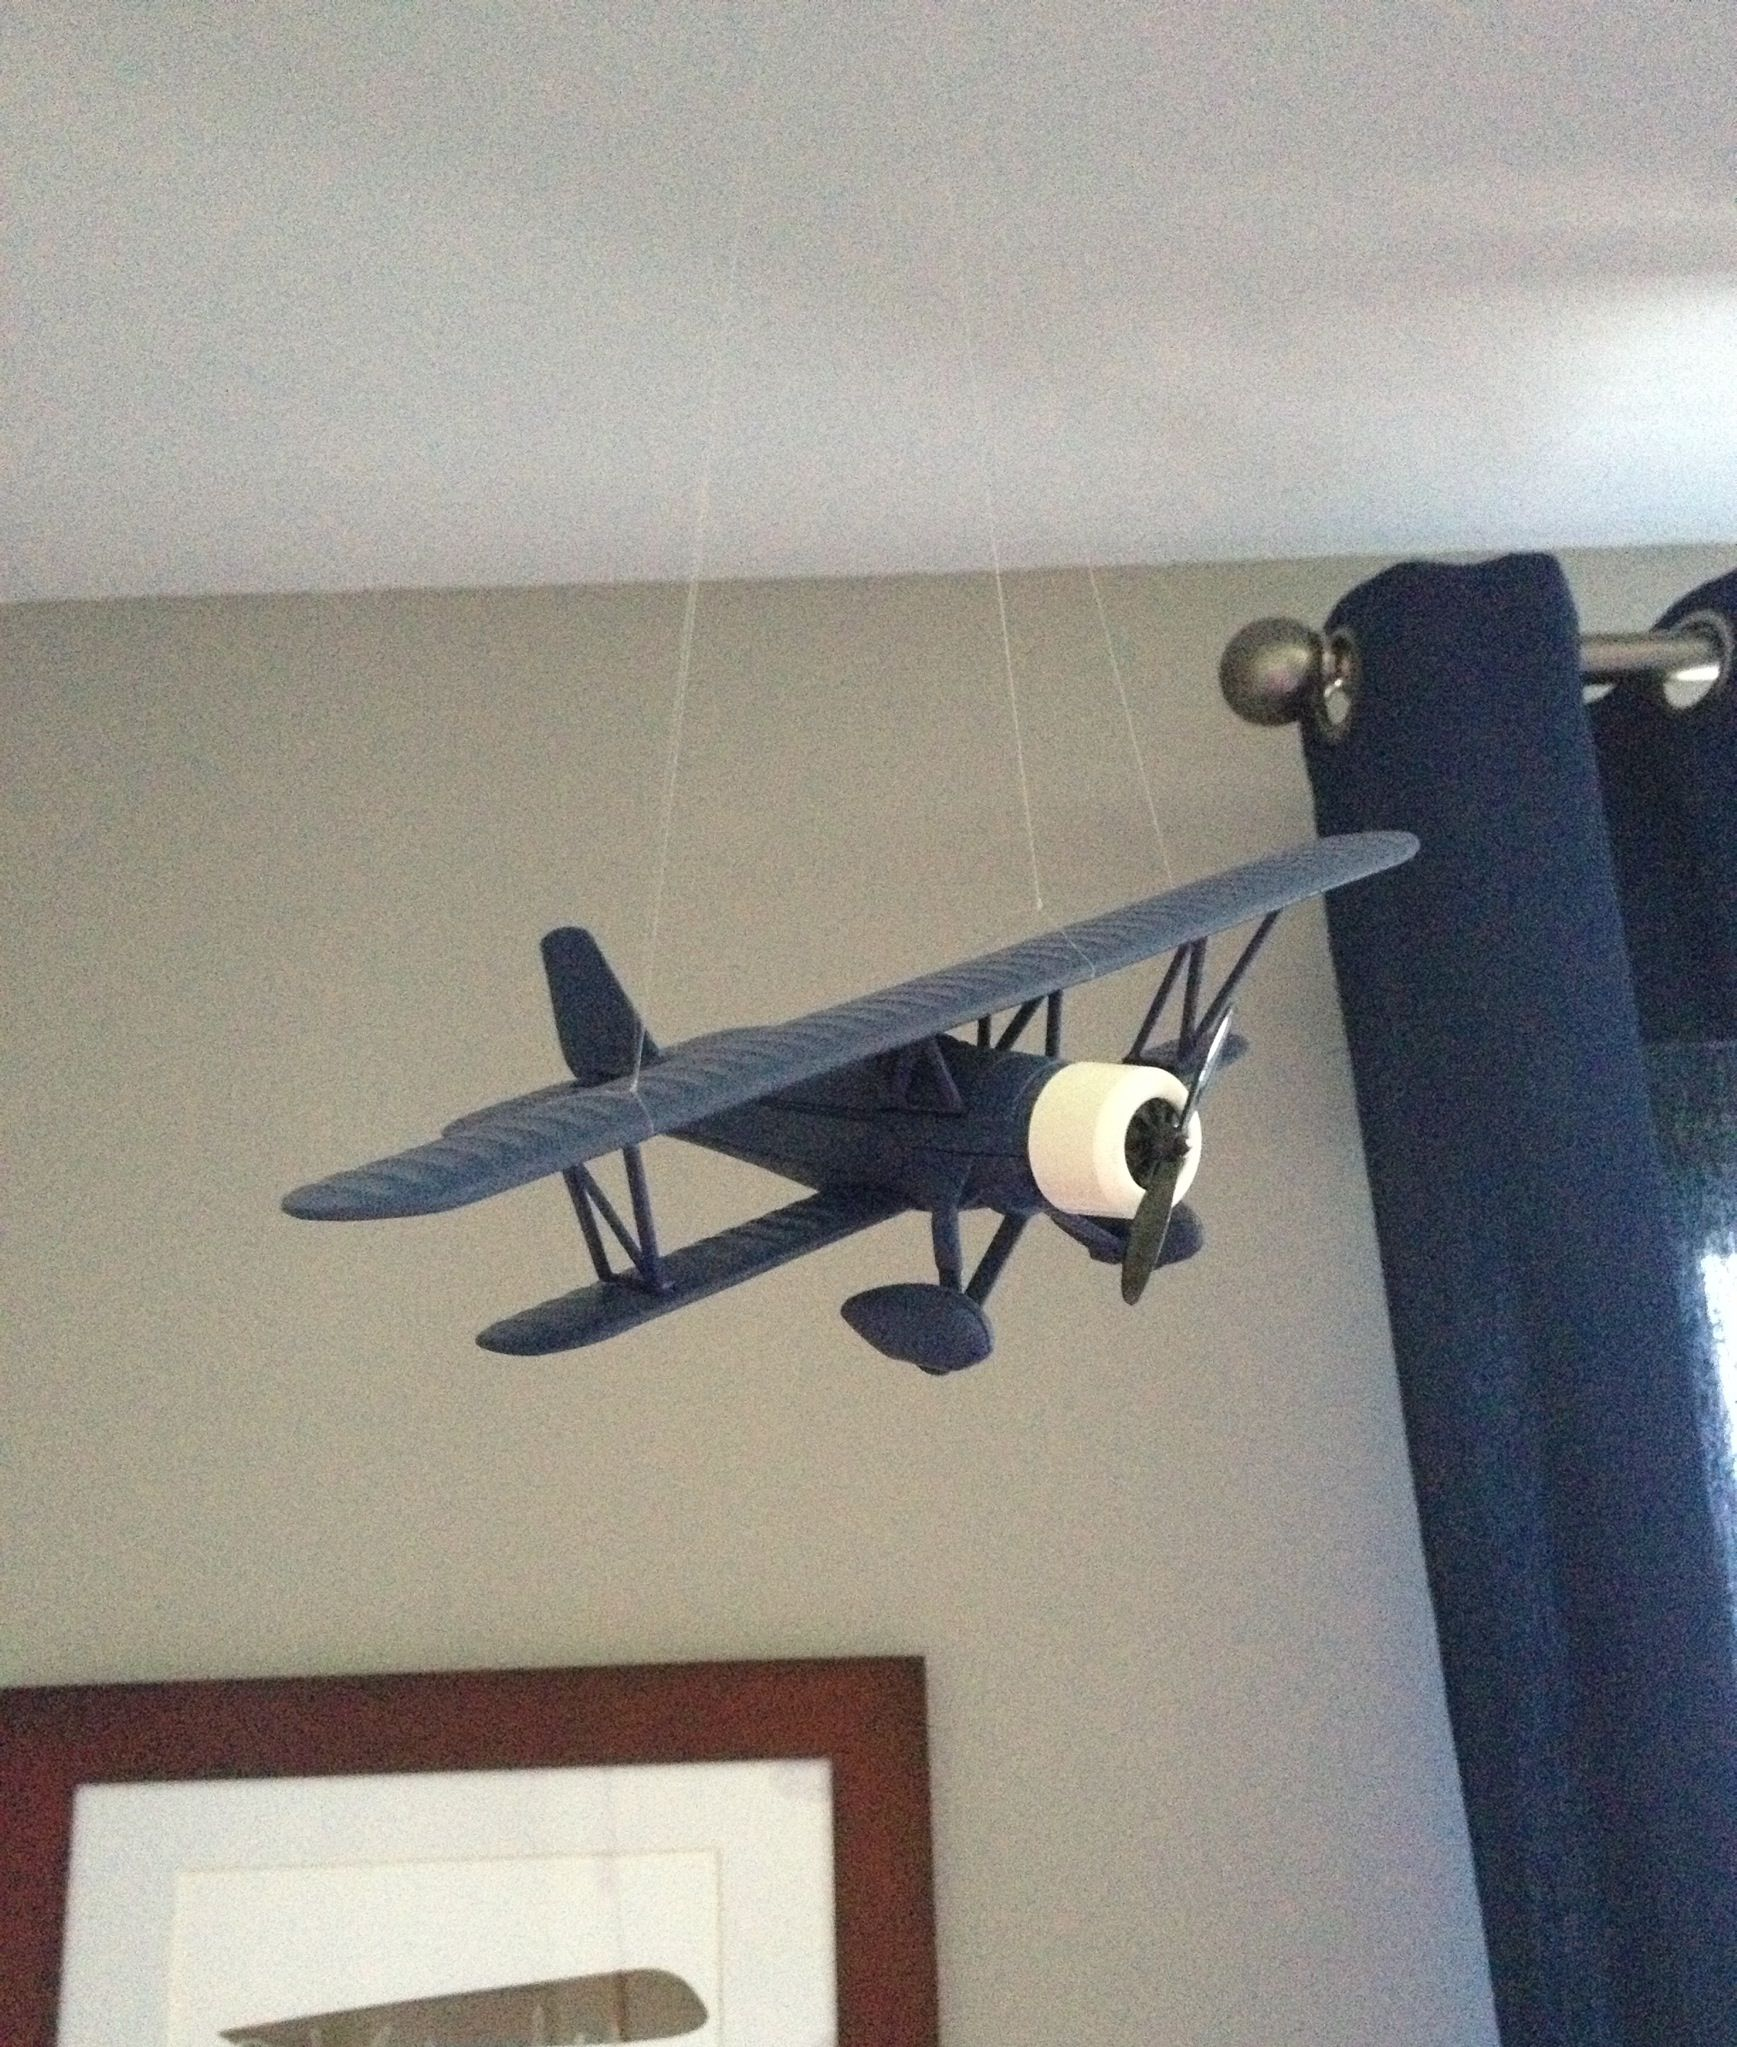 Hanging Airplanes From Ceiling Studs With Fishing Line